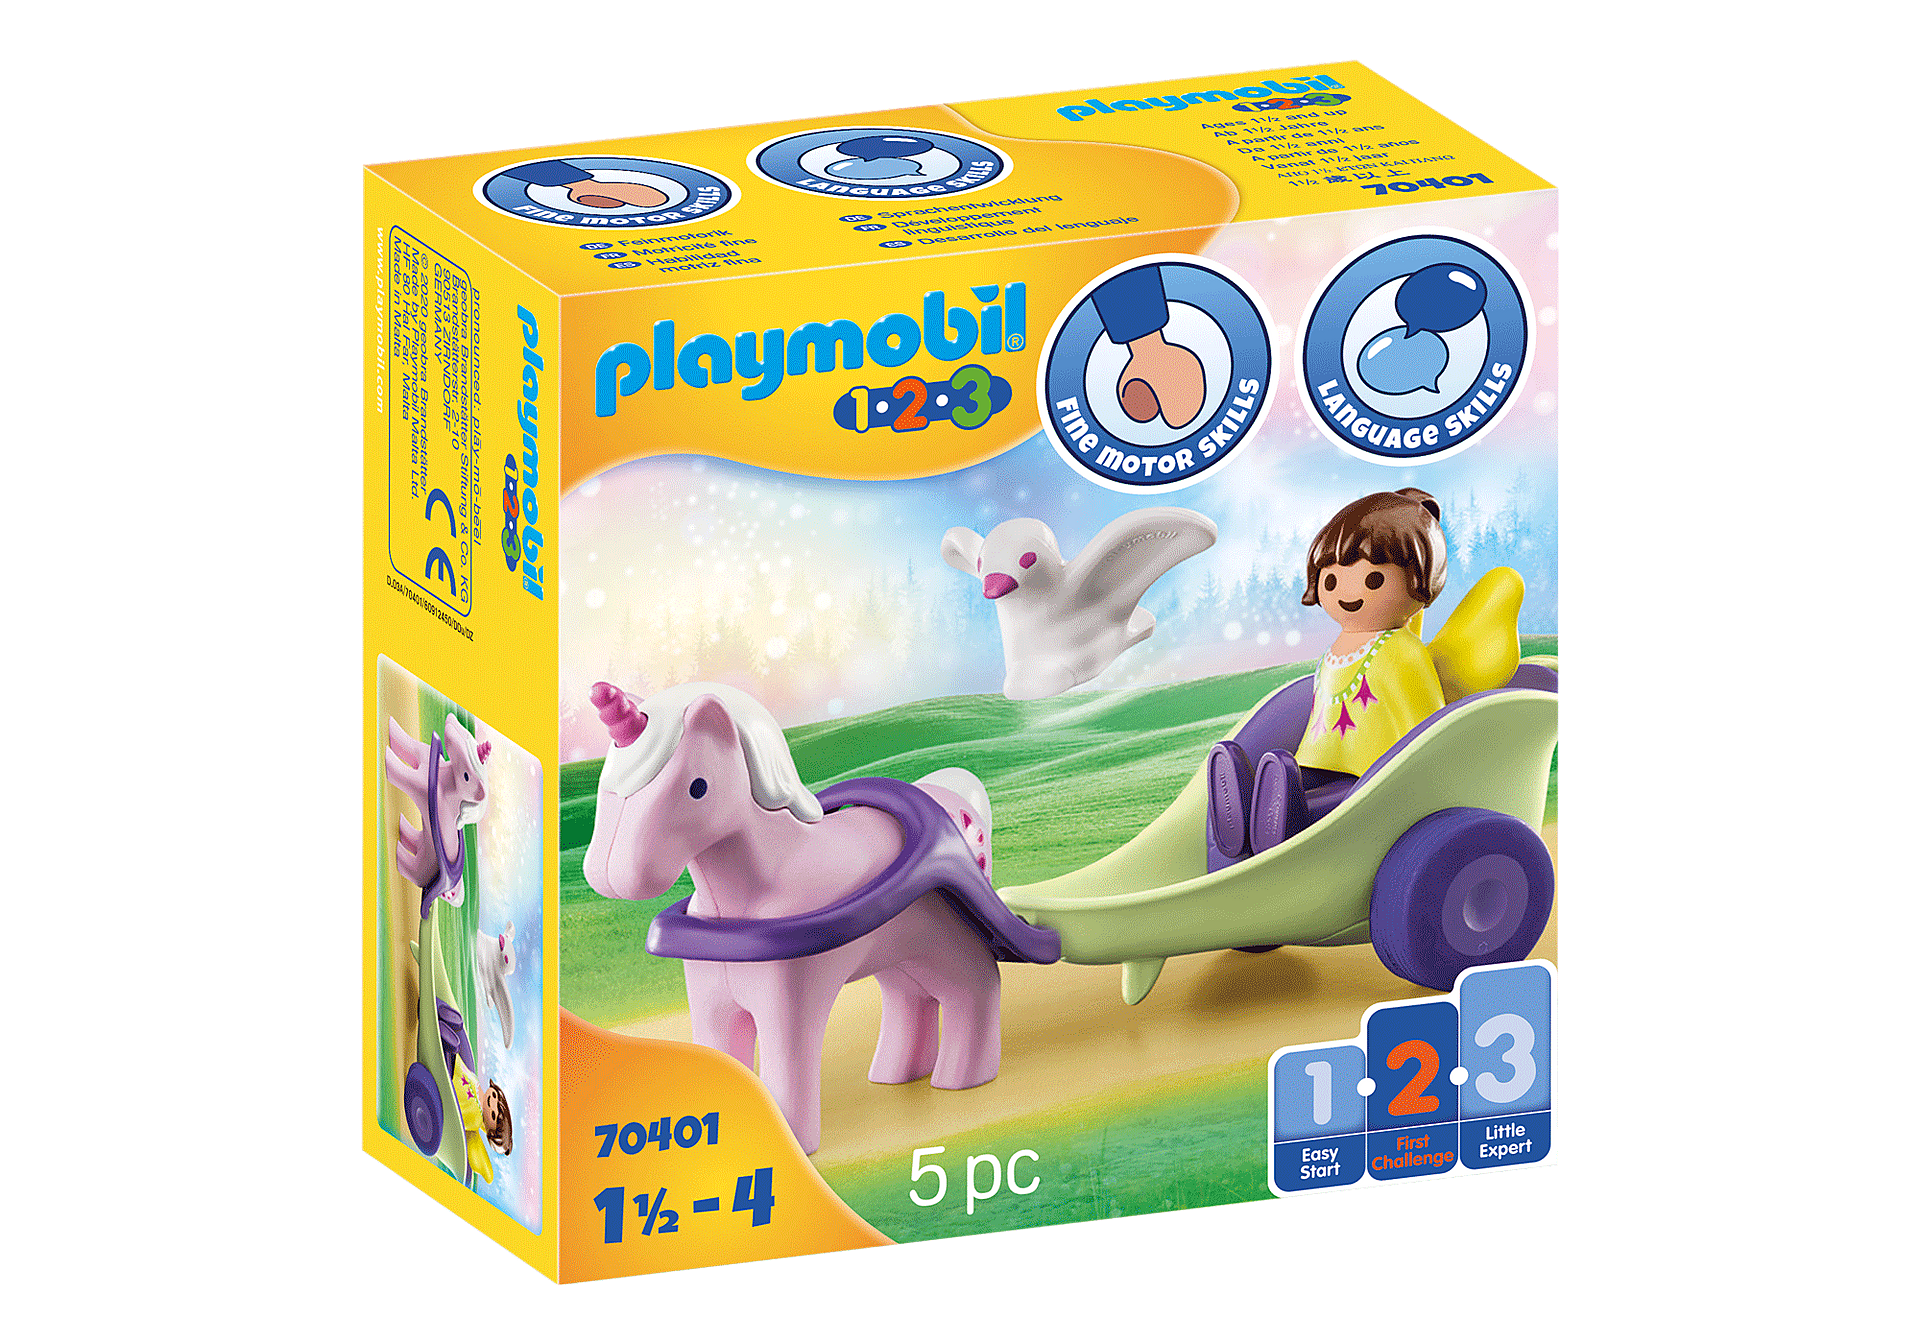 70401 Unicorn Carriage with Fairy zoom image2